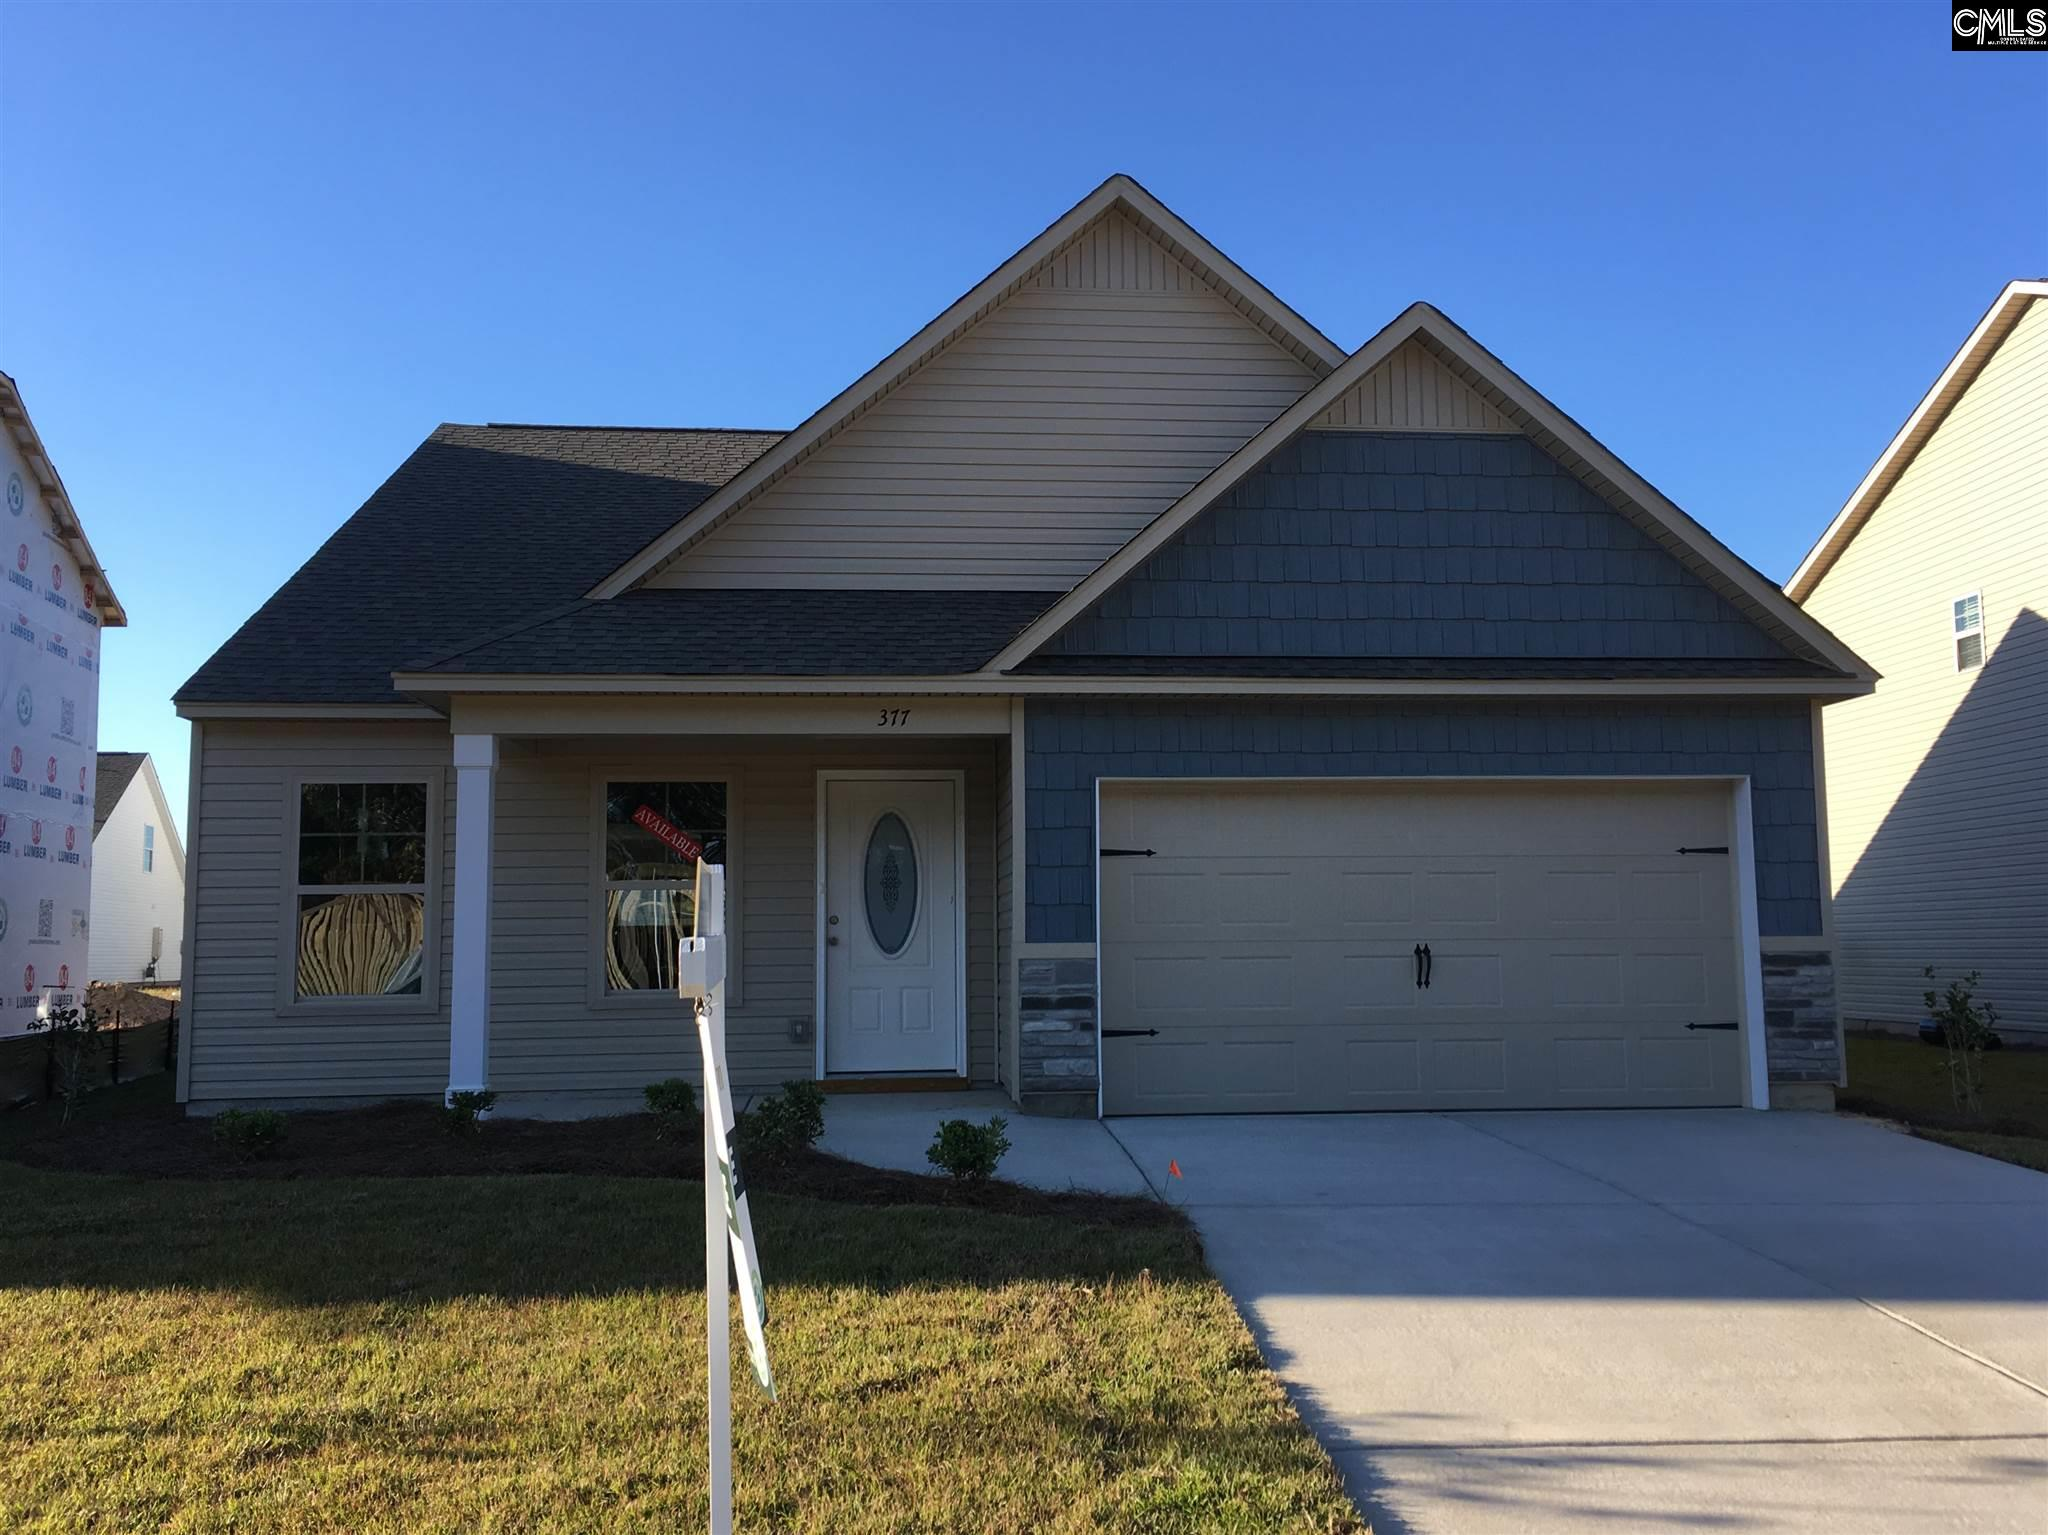 377  Fairford #13 Blythewood, SC 29016